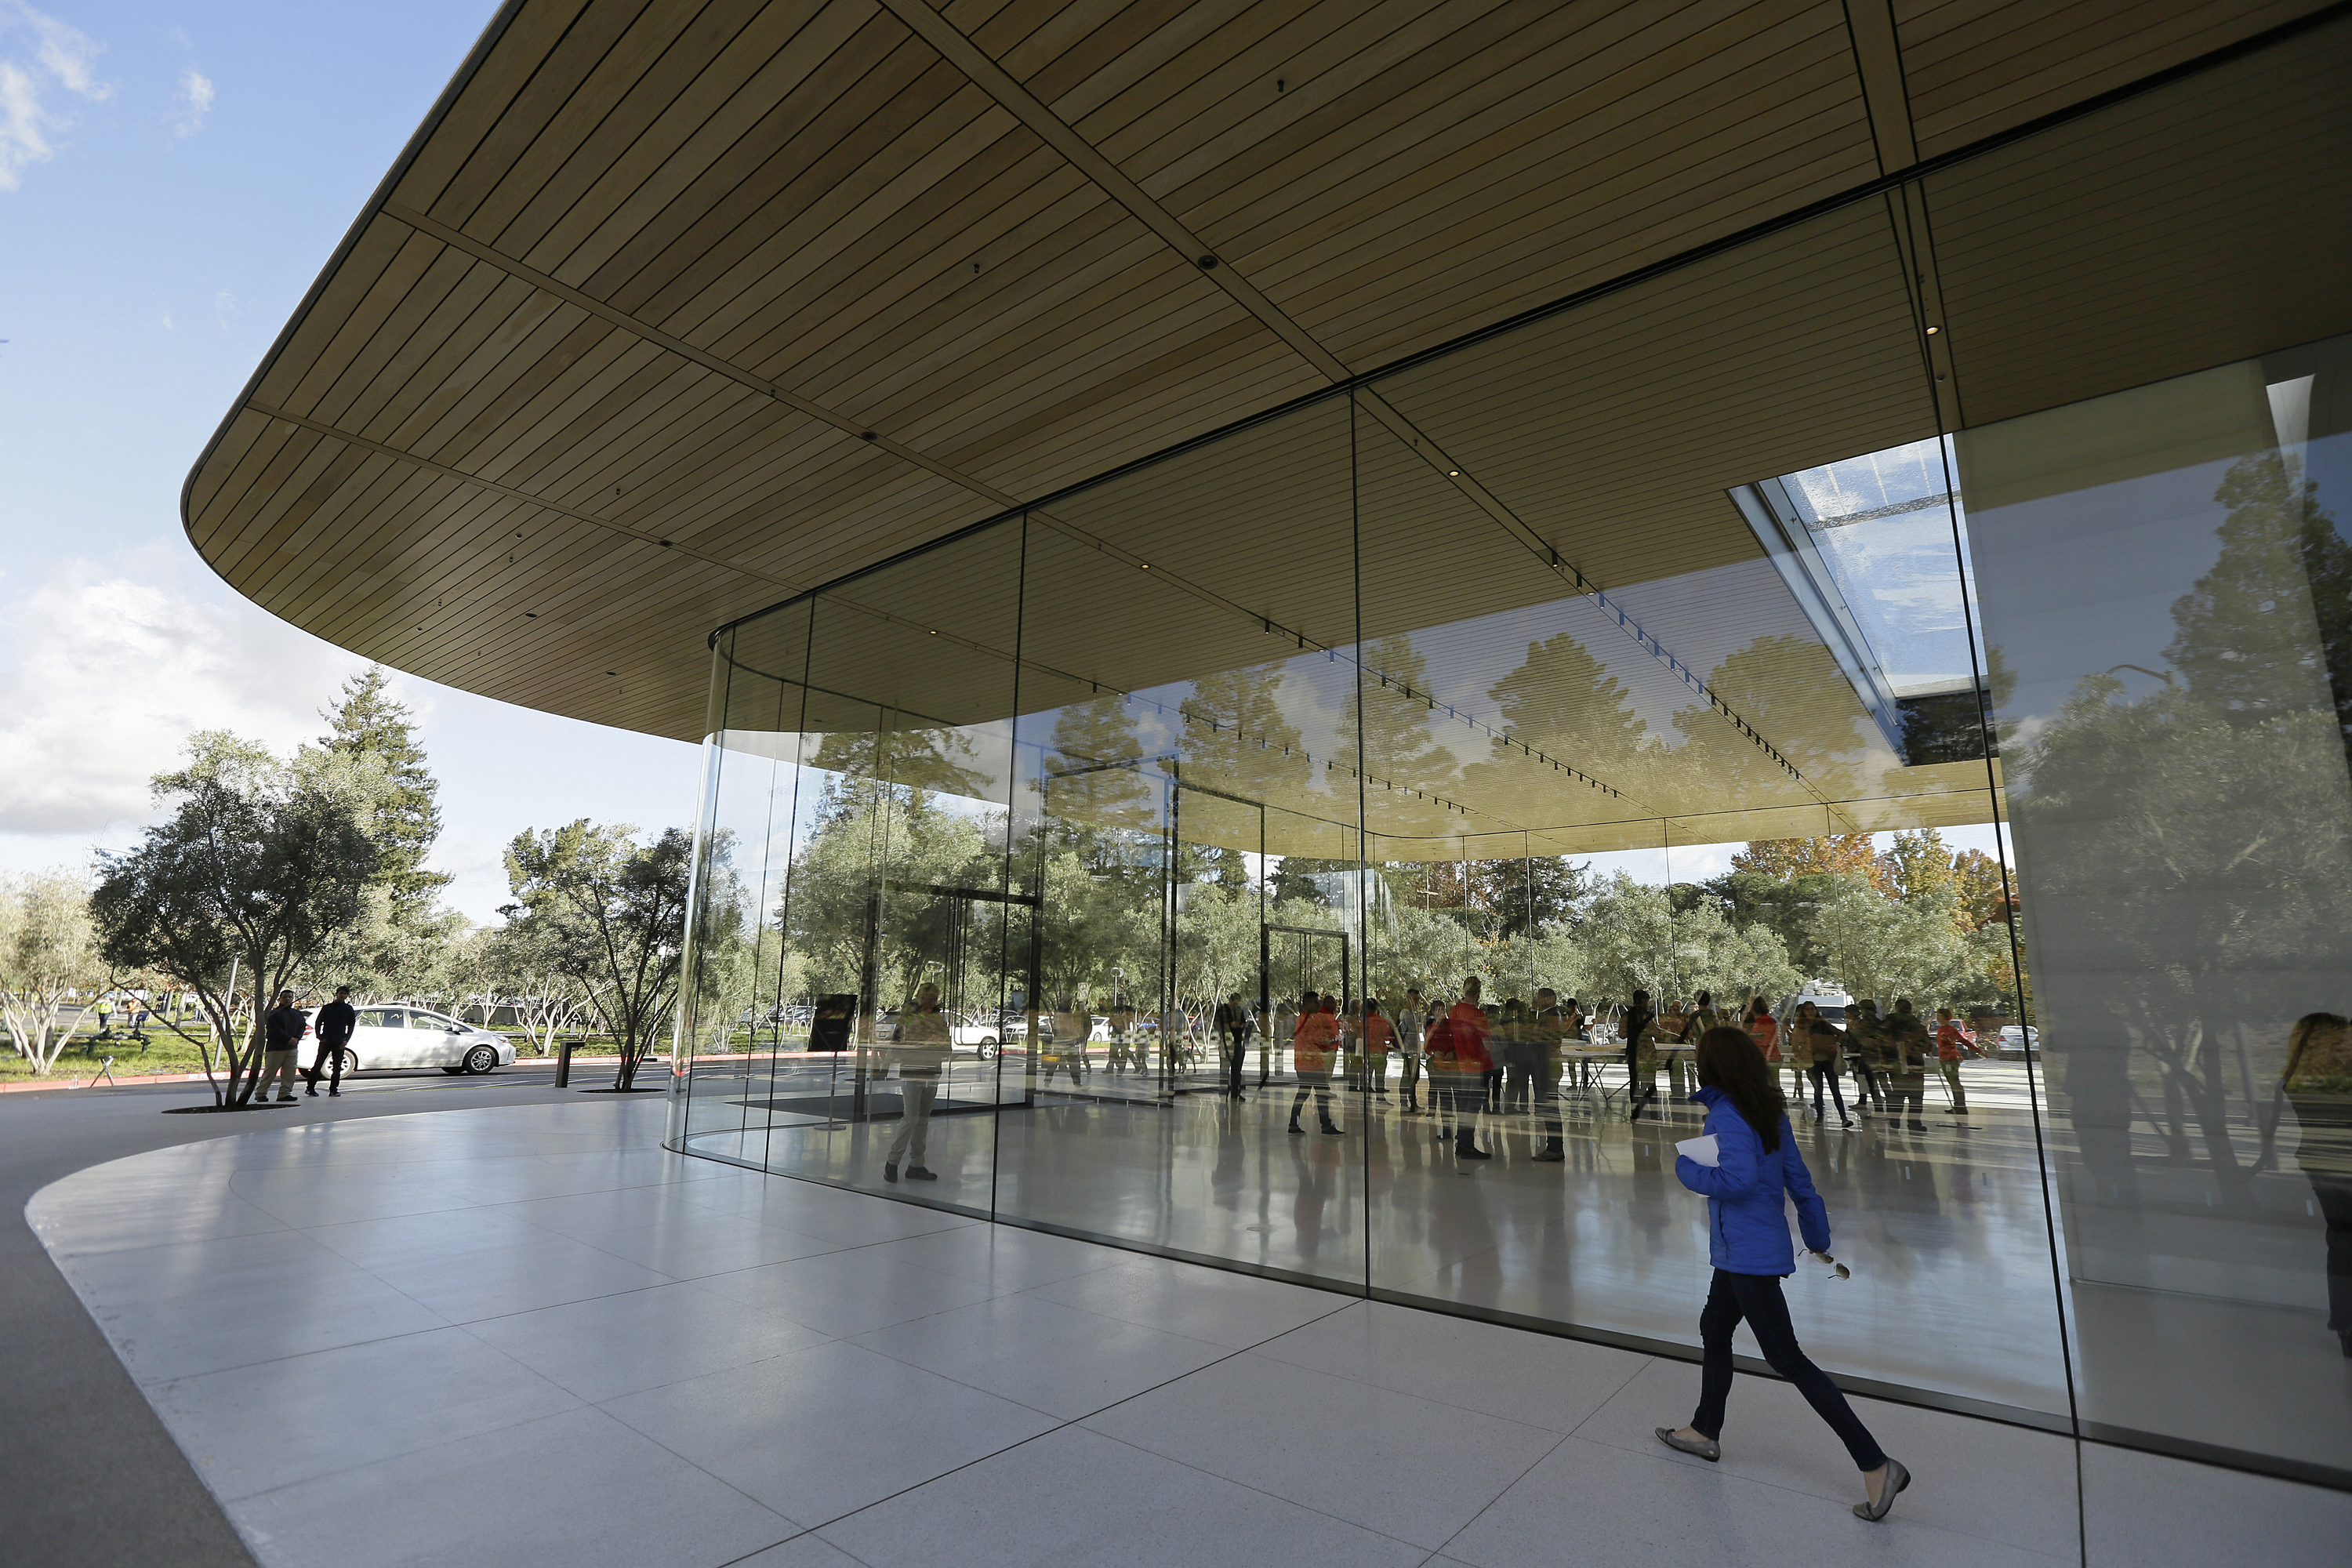 <div class='meta'><div class='origin-logo' data-origin='none'></div><span class='caption-text' data-credit='AP'>Shown is an exterior view of the Apple Park Visitor Center during its grand opening Friday, Nov. 17, 2017, in Cupertino, Calif. (AP Photo/Eric Risberg)</span></div>